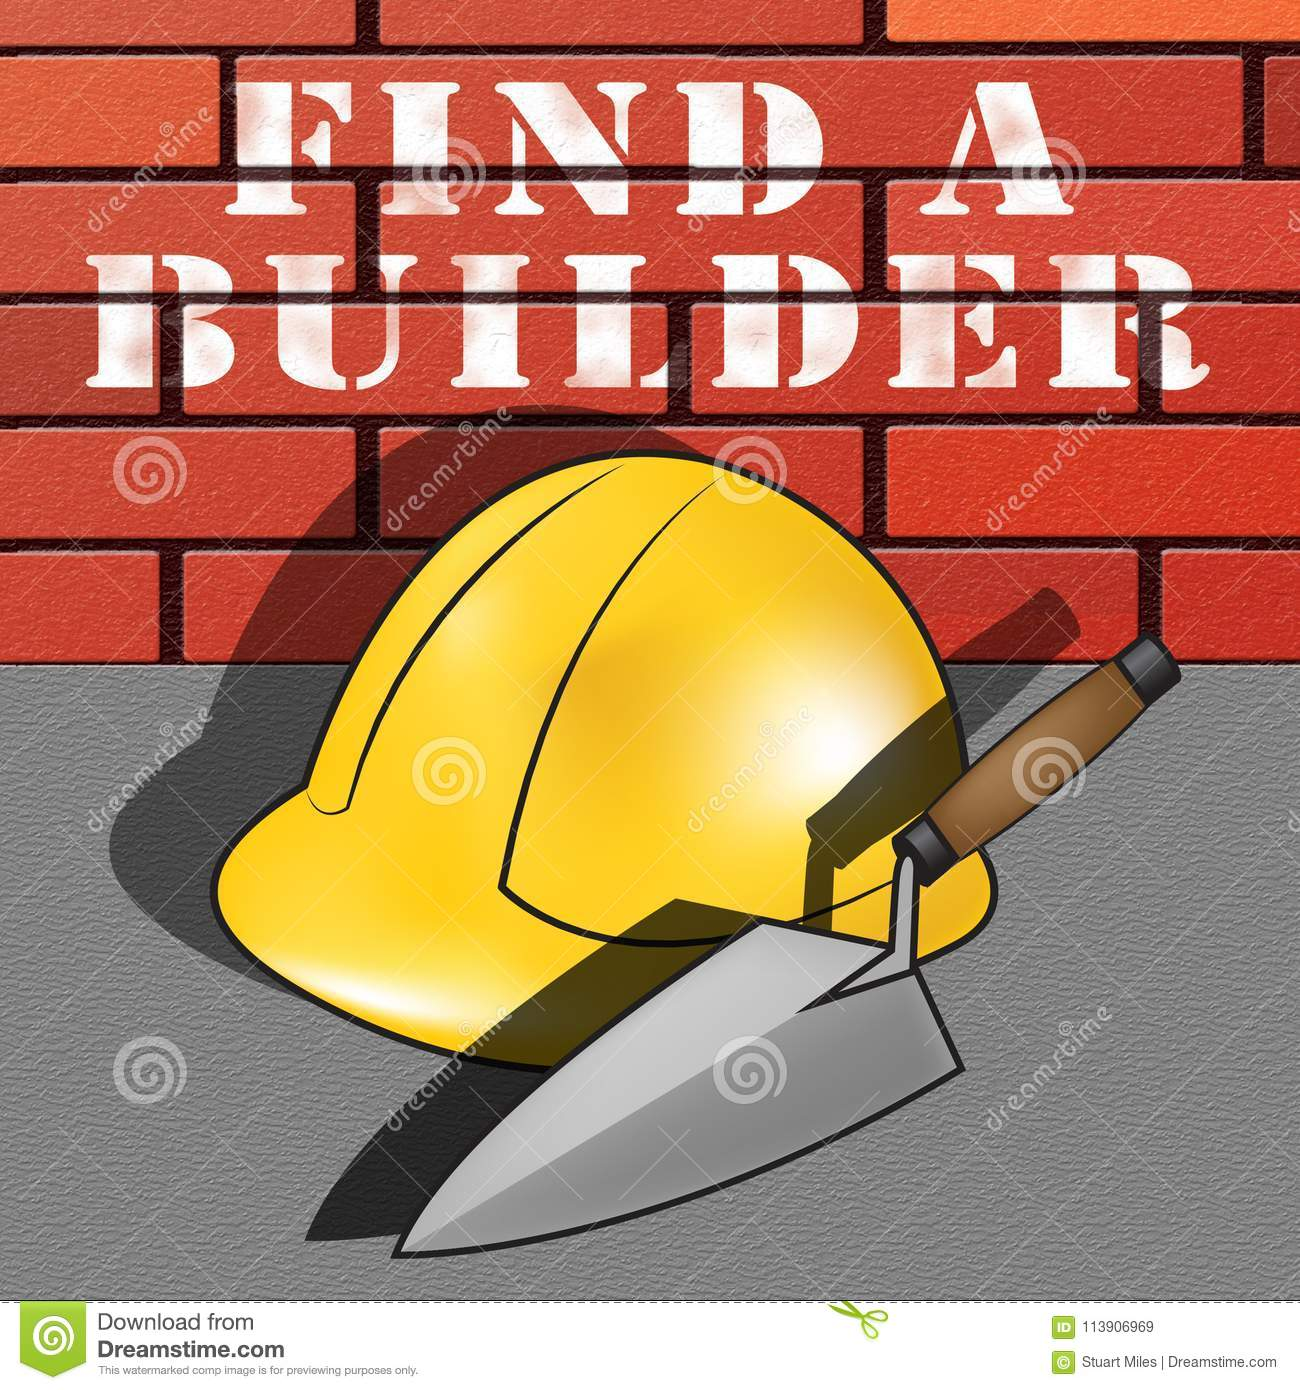 Find A Contractor >> Find A Builder Represents Contractor Search 3d Illustration Stock